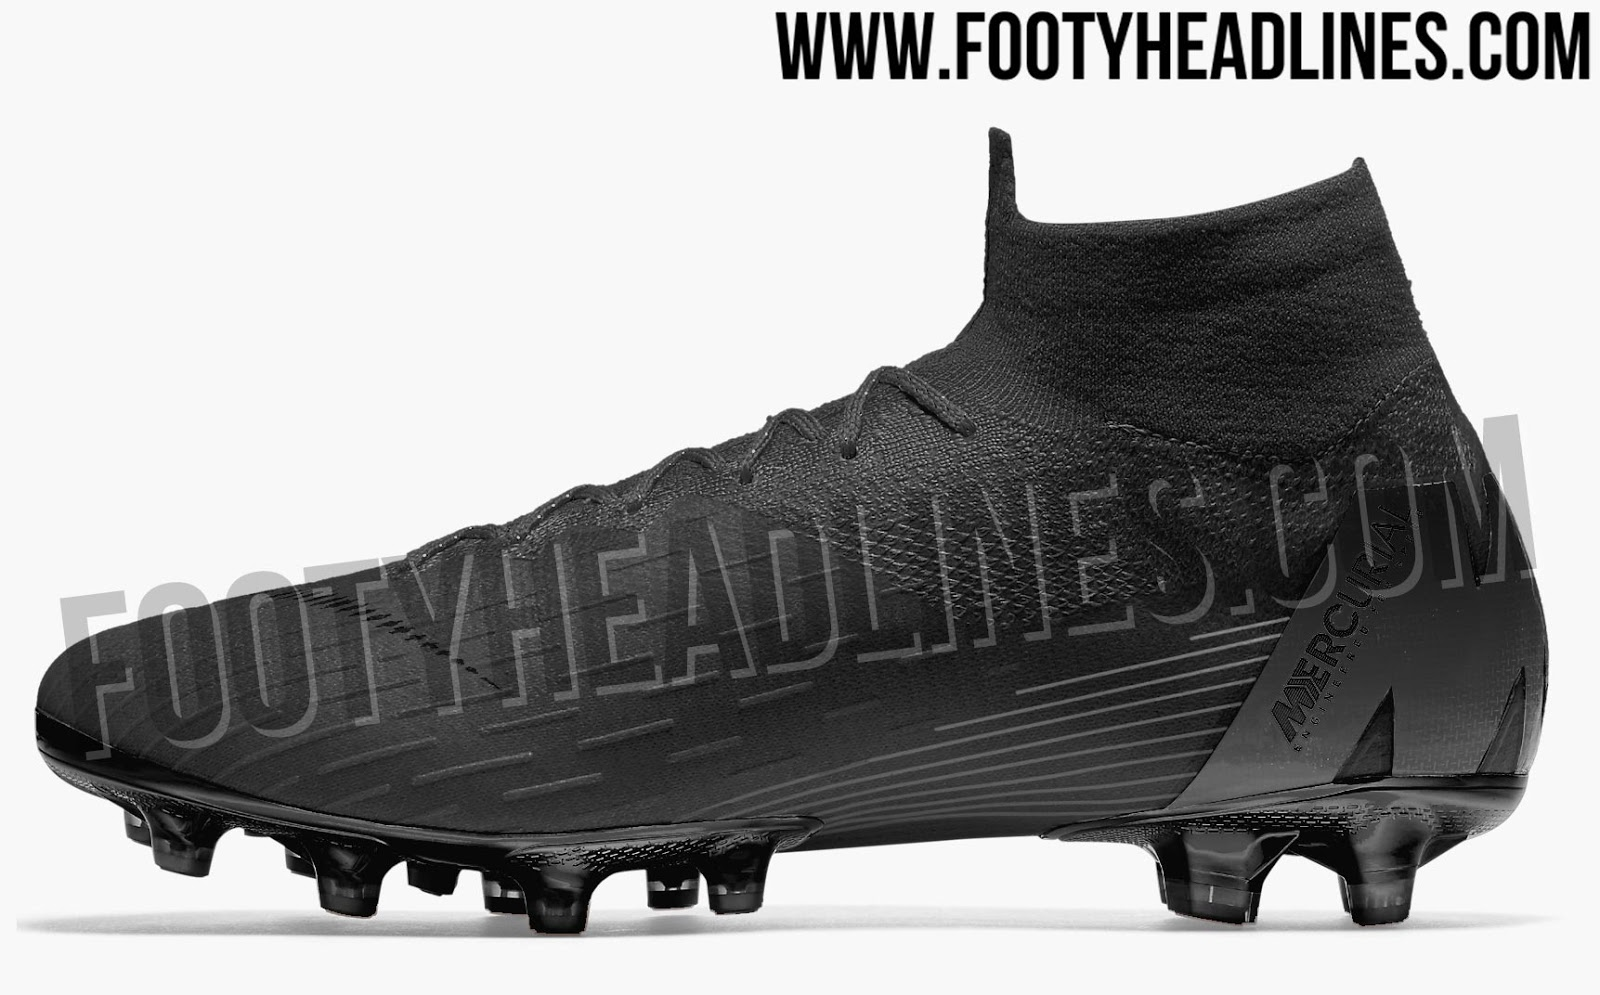 blackout nike mercurial superfly 360 2018 19 black pack boots leaked footy headlines. Black Bedroom Furniture Sets. Home Design Ideas